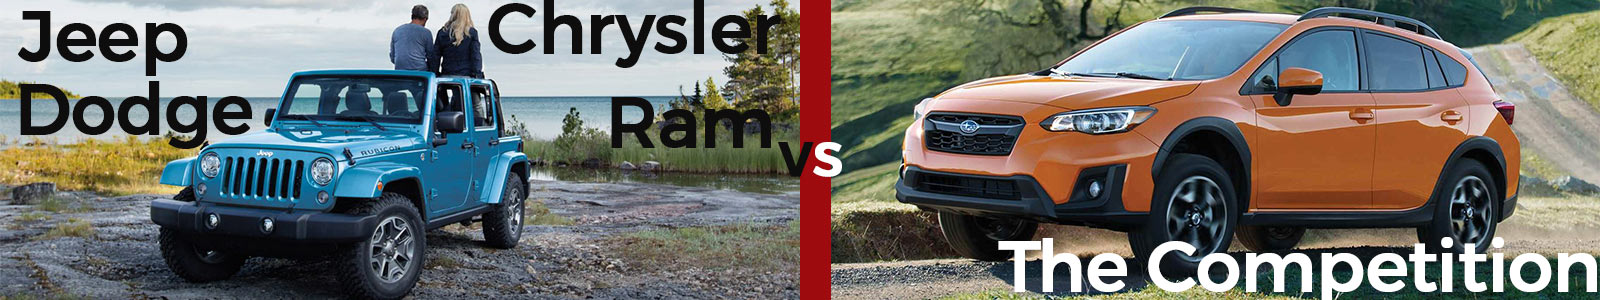 Jeep Dodge Chrysler Ram vs The Competition Riveradle